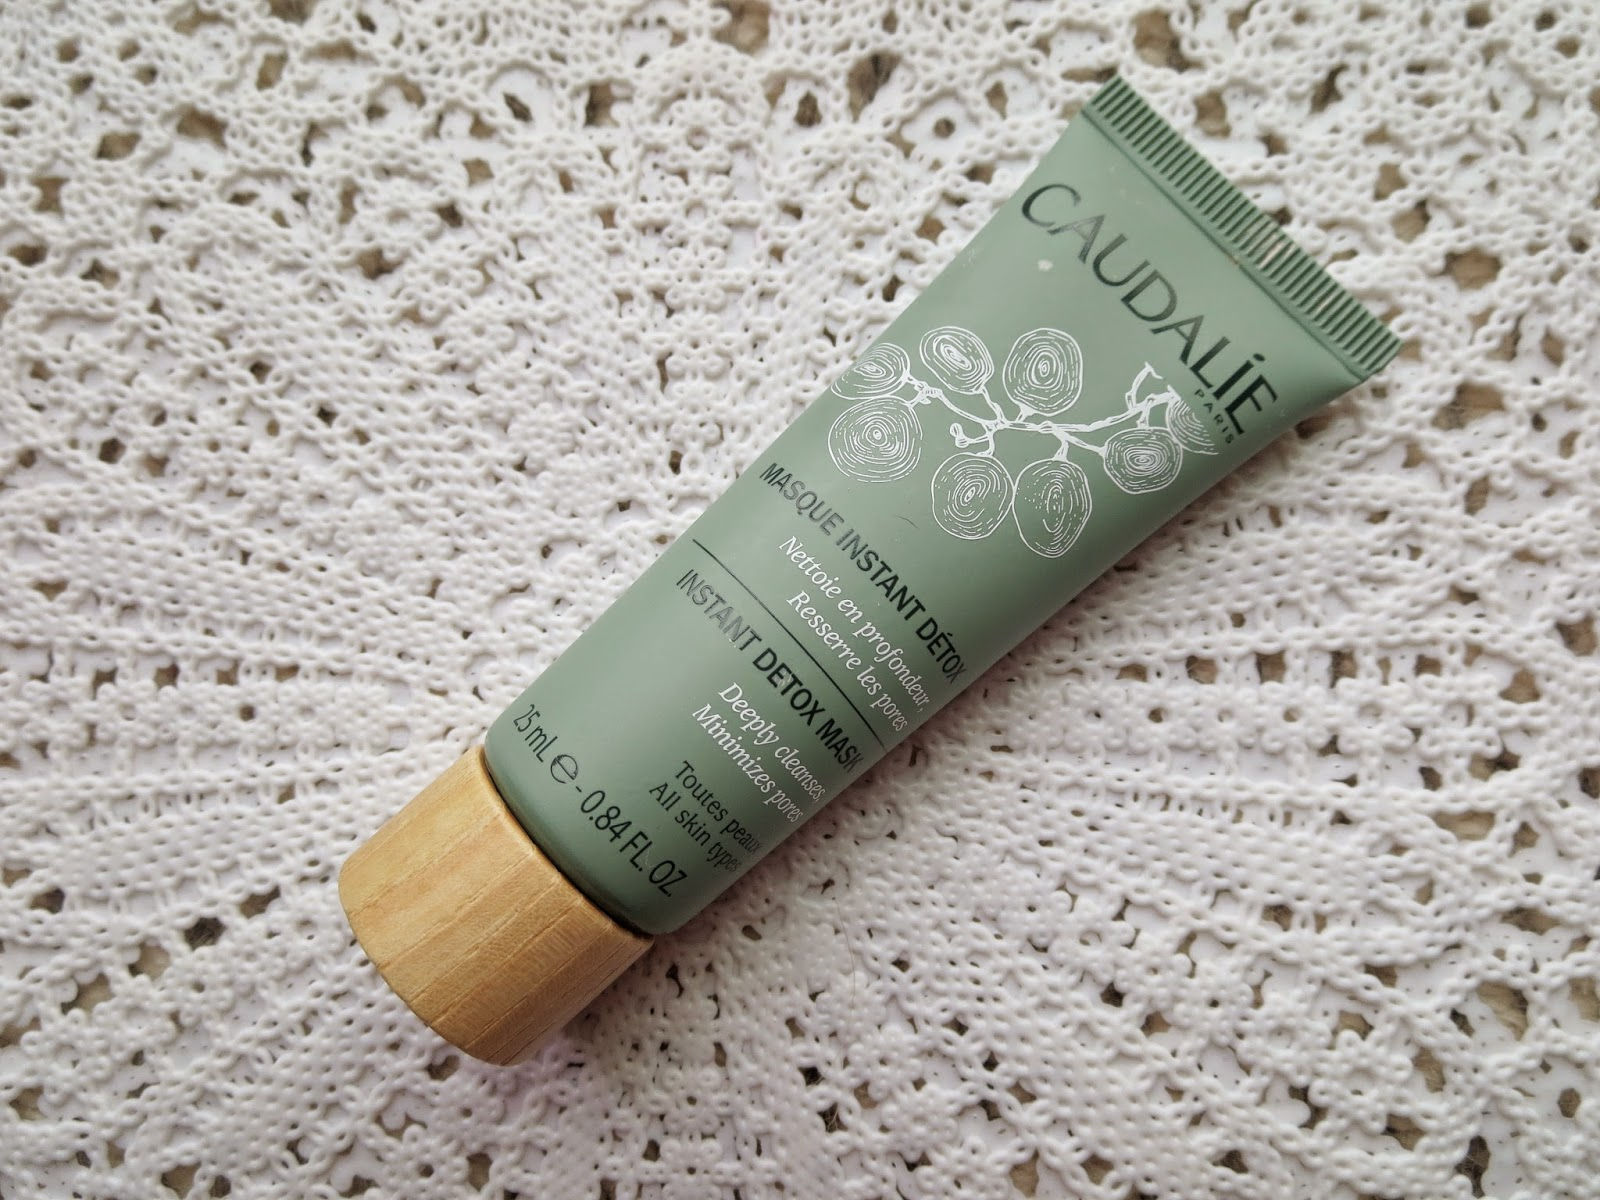 a picture of Caudalie Instant Detox Mask